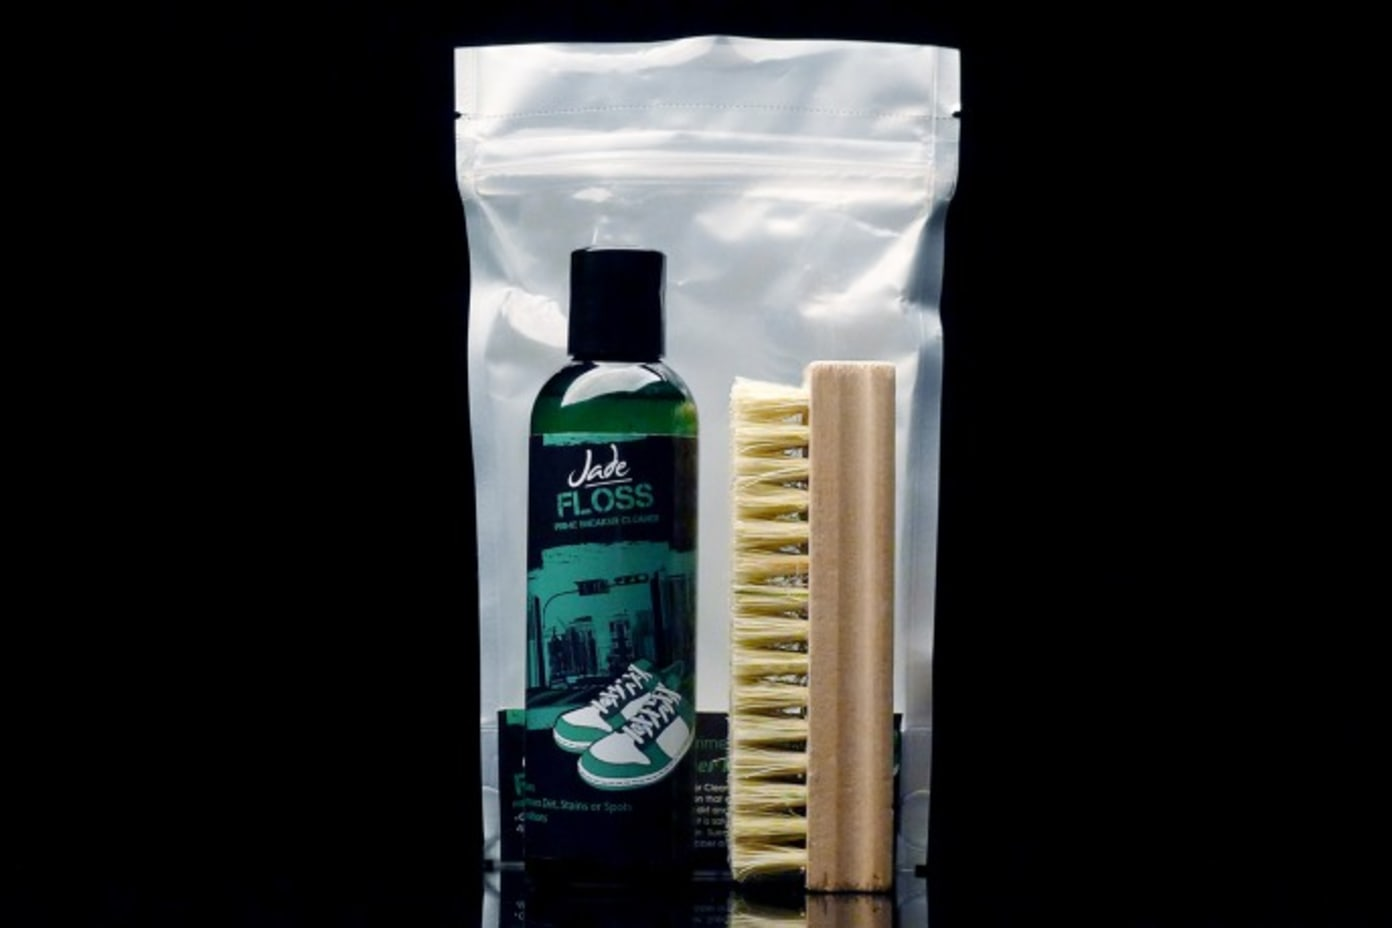 Jade Floss Sneaker Cleaning Products Available at Shelflife